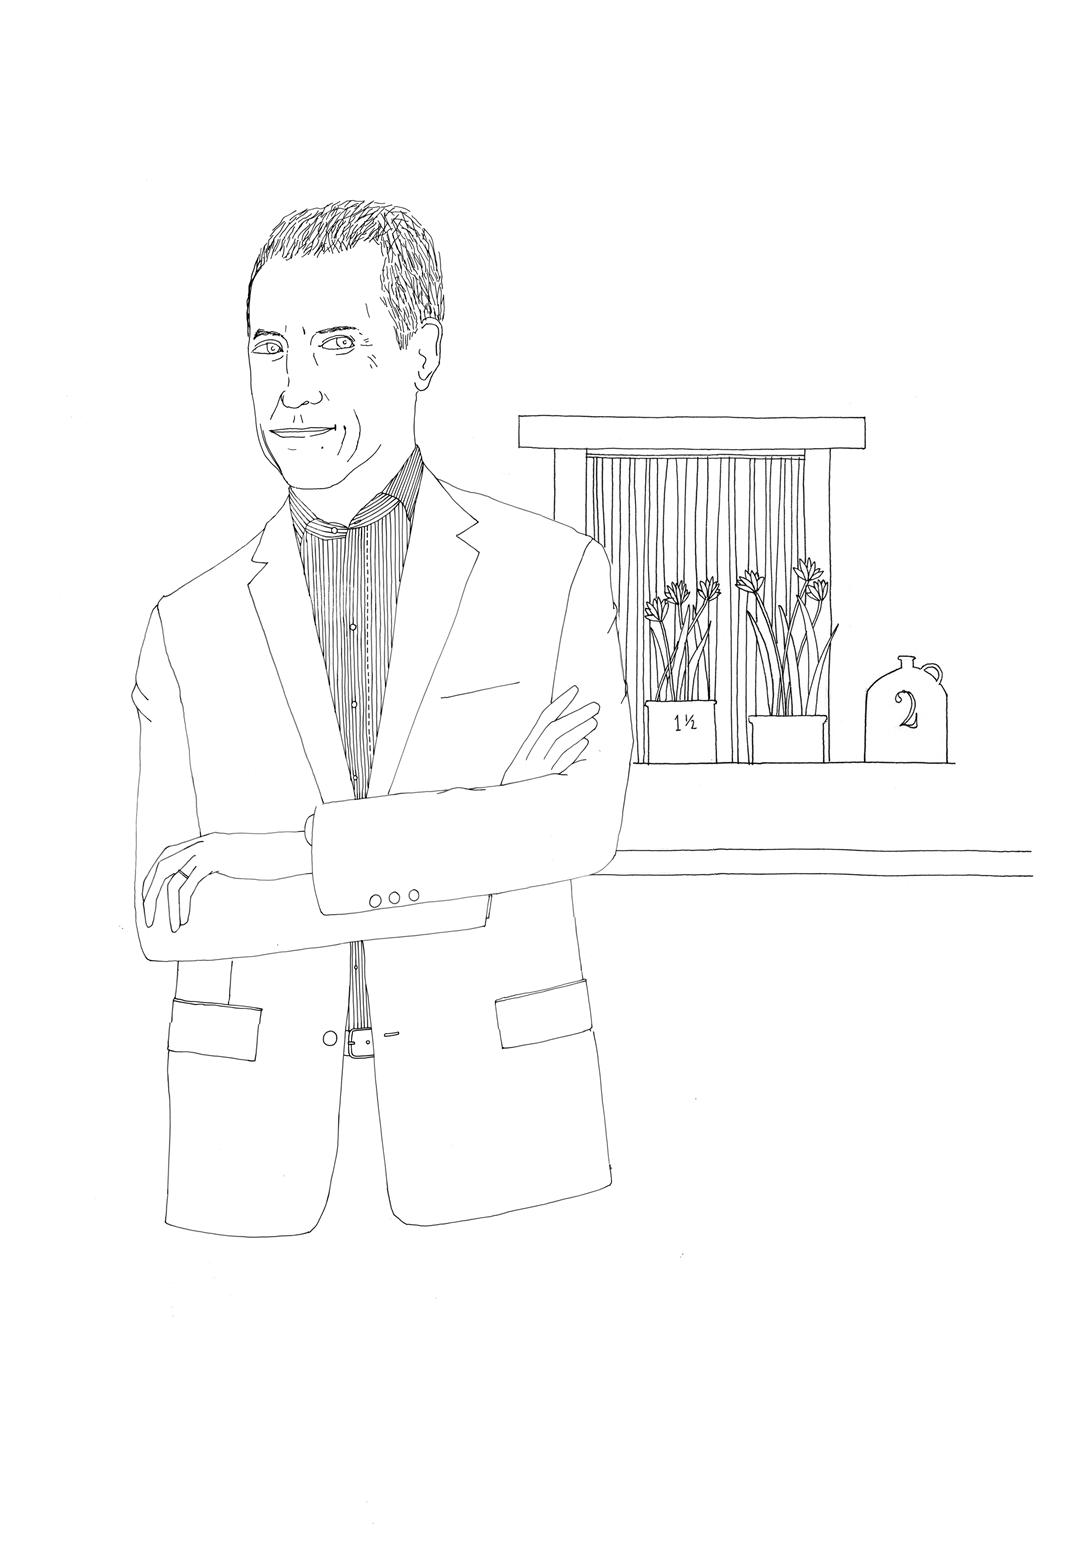 Danny Meyer, as drawn by Nigel Peake for The Art of the Restaurateur